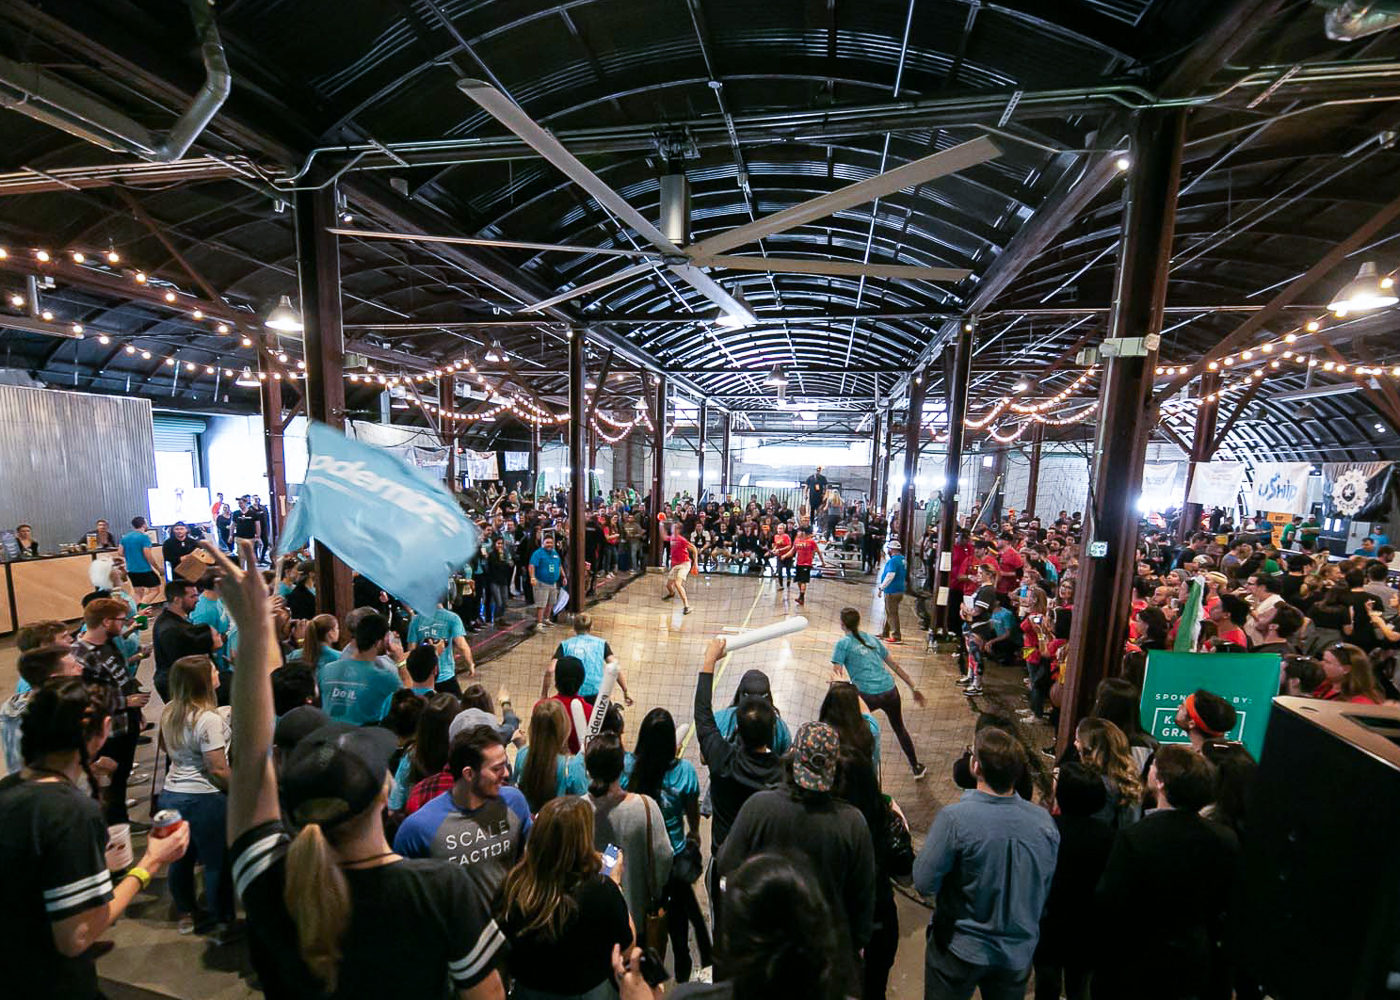 Startup Games Austin Raises $60K for Nonprofits - READ MORE